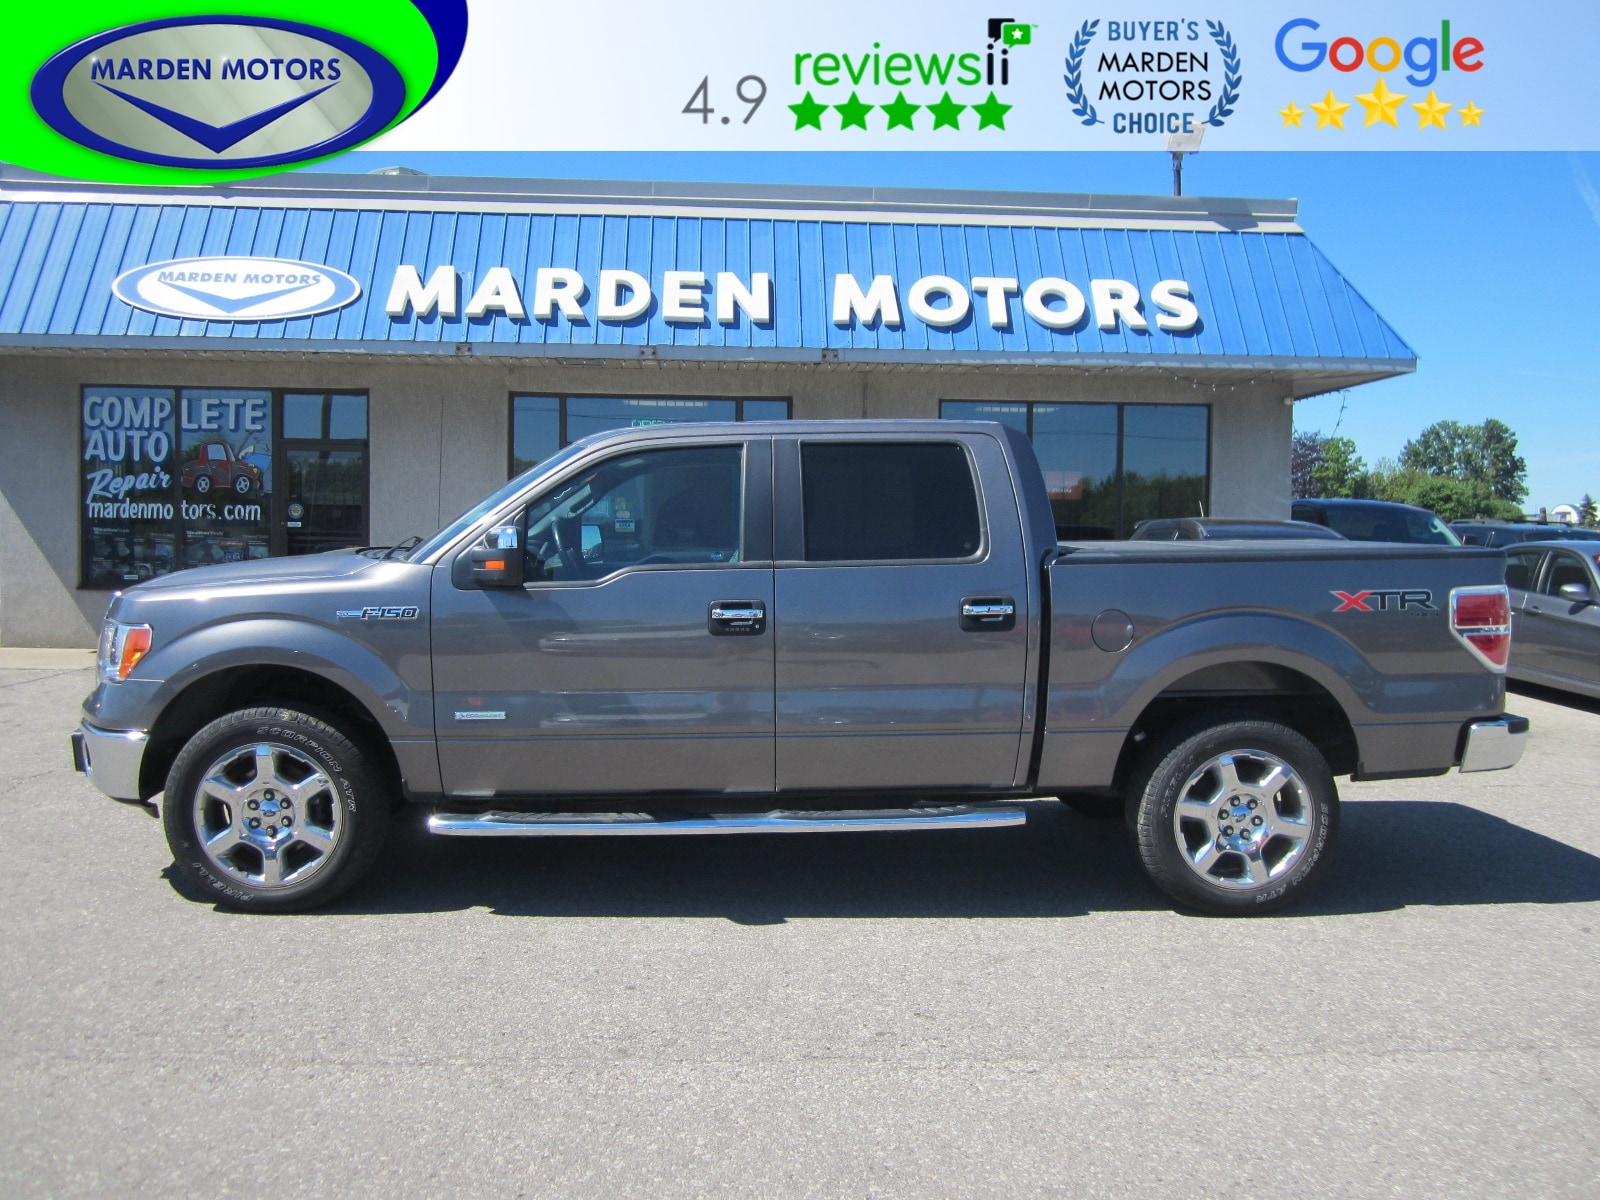 Marden Motors sales and service for quality used cars, trucks, SUV\'s ...